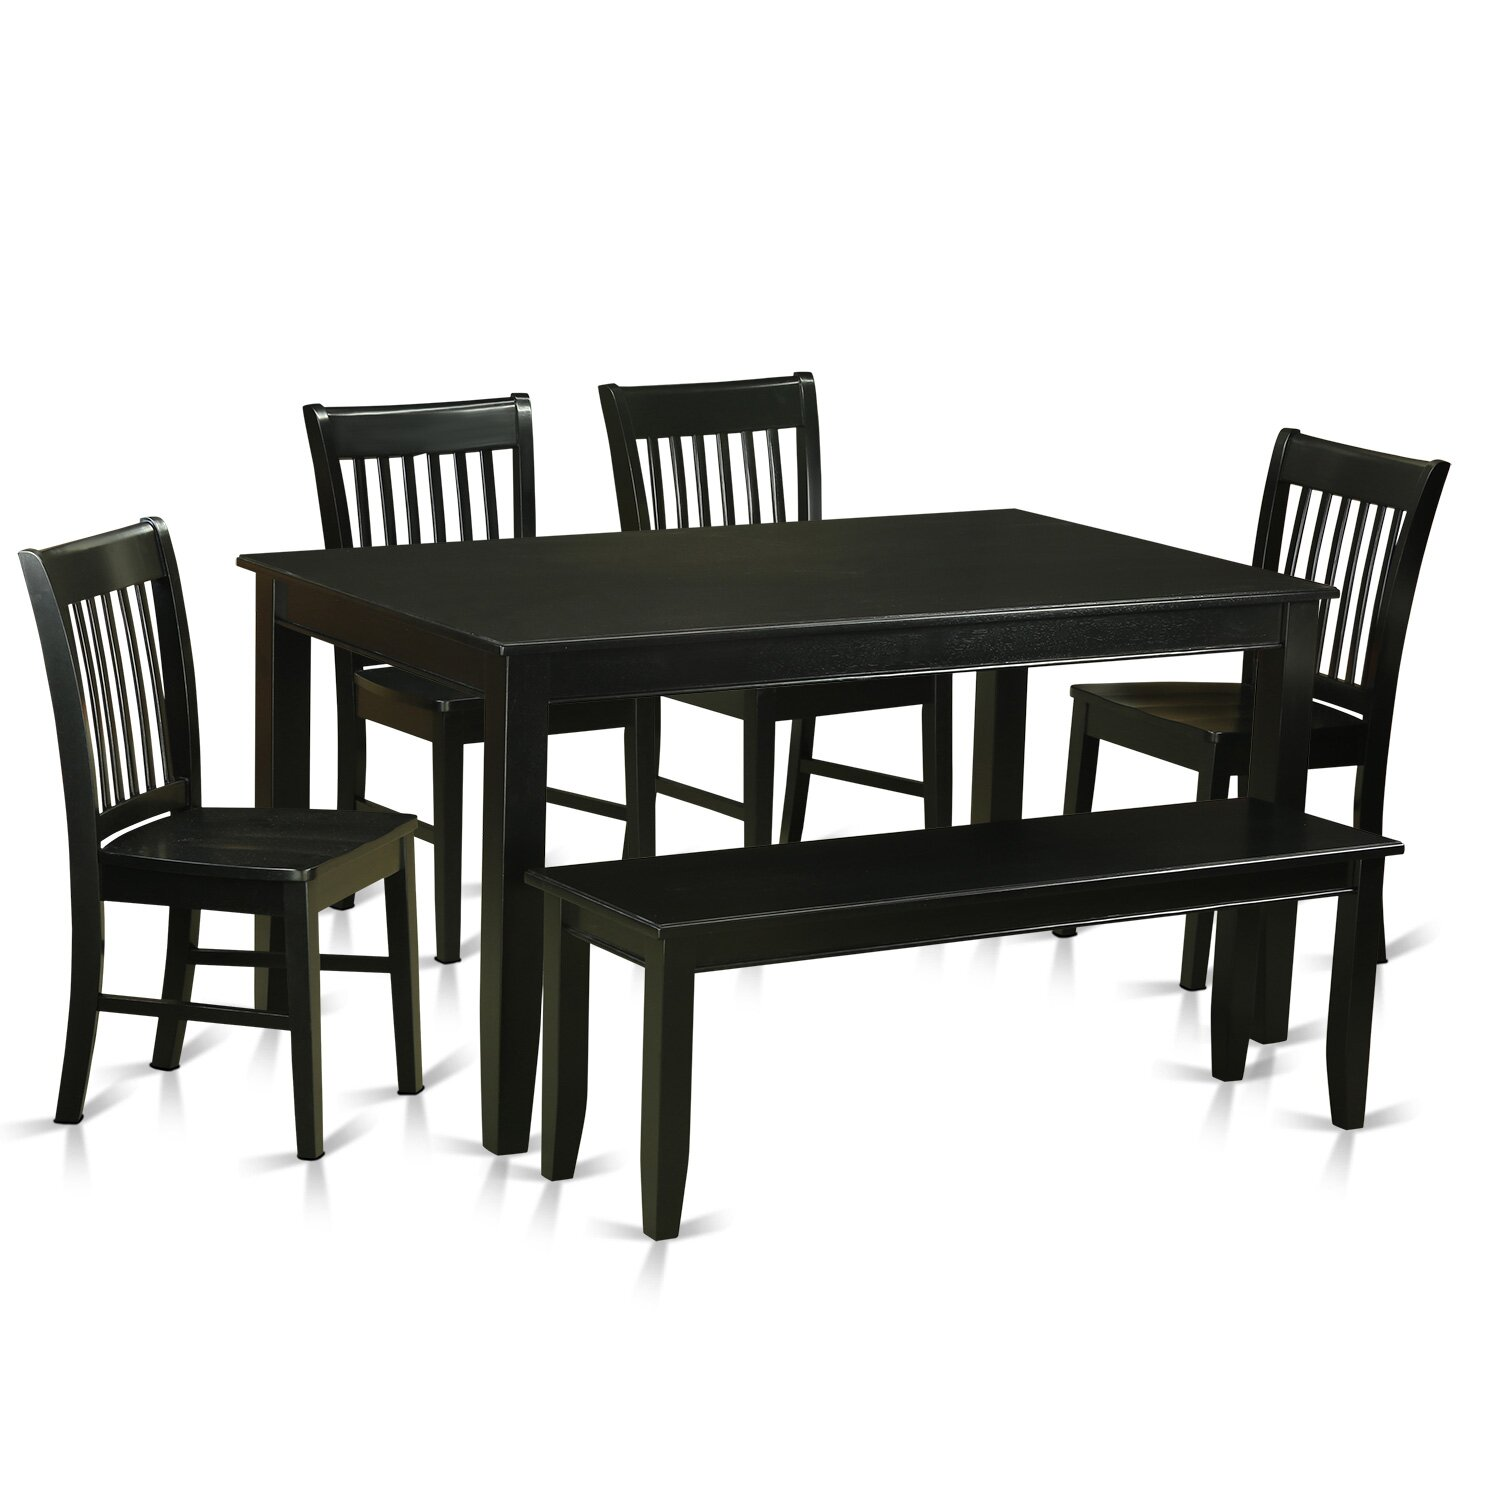 East west dudley 6 piece dining set wayfair for Dining room table for 6